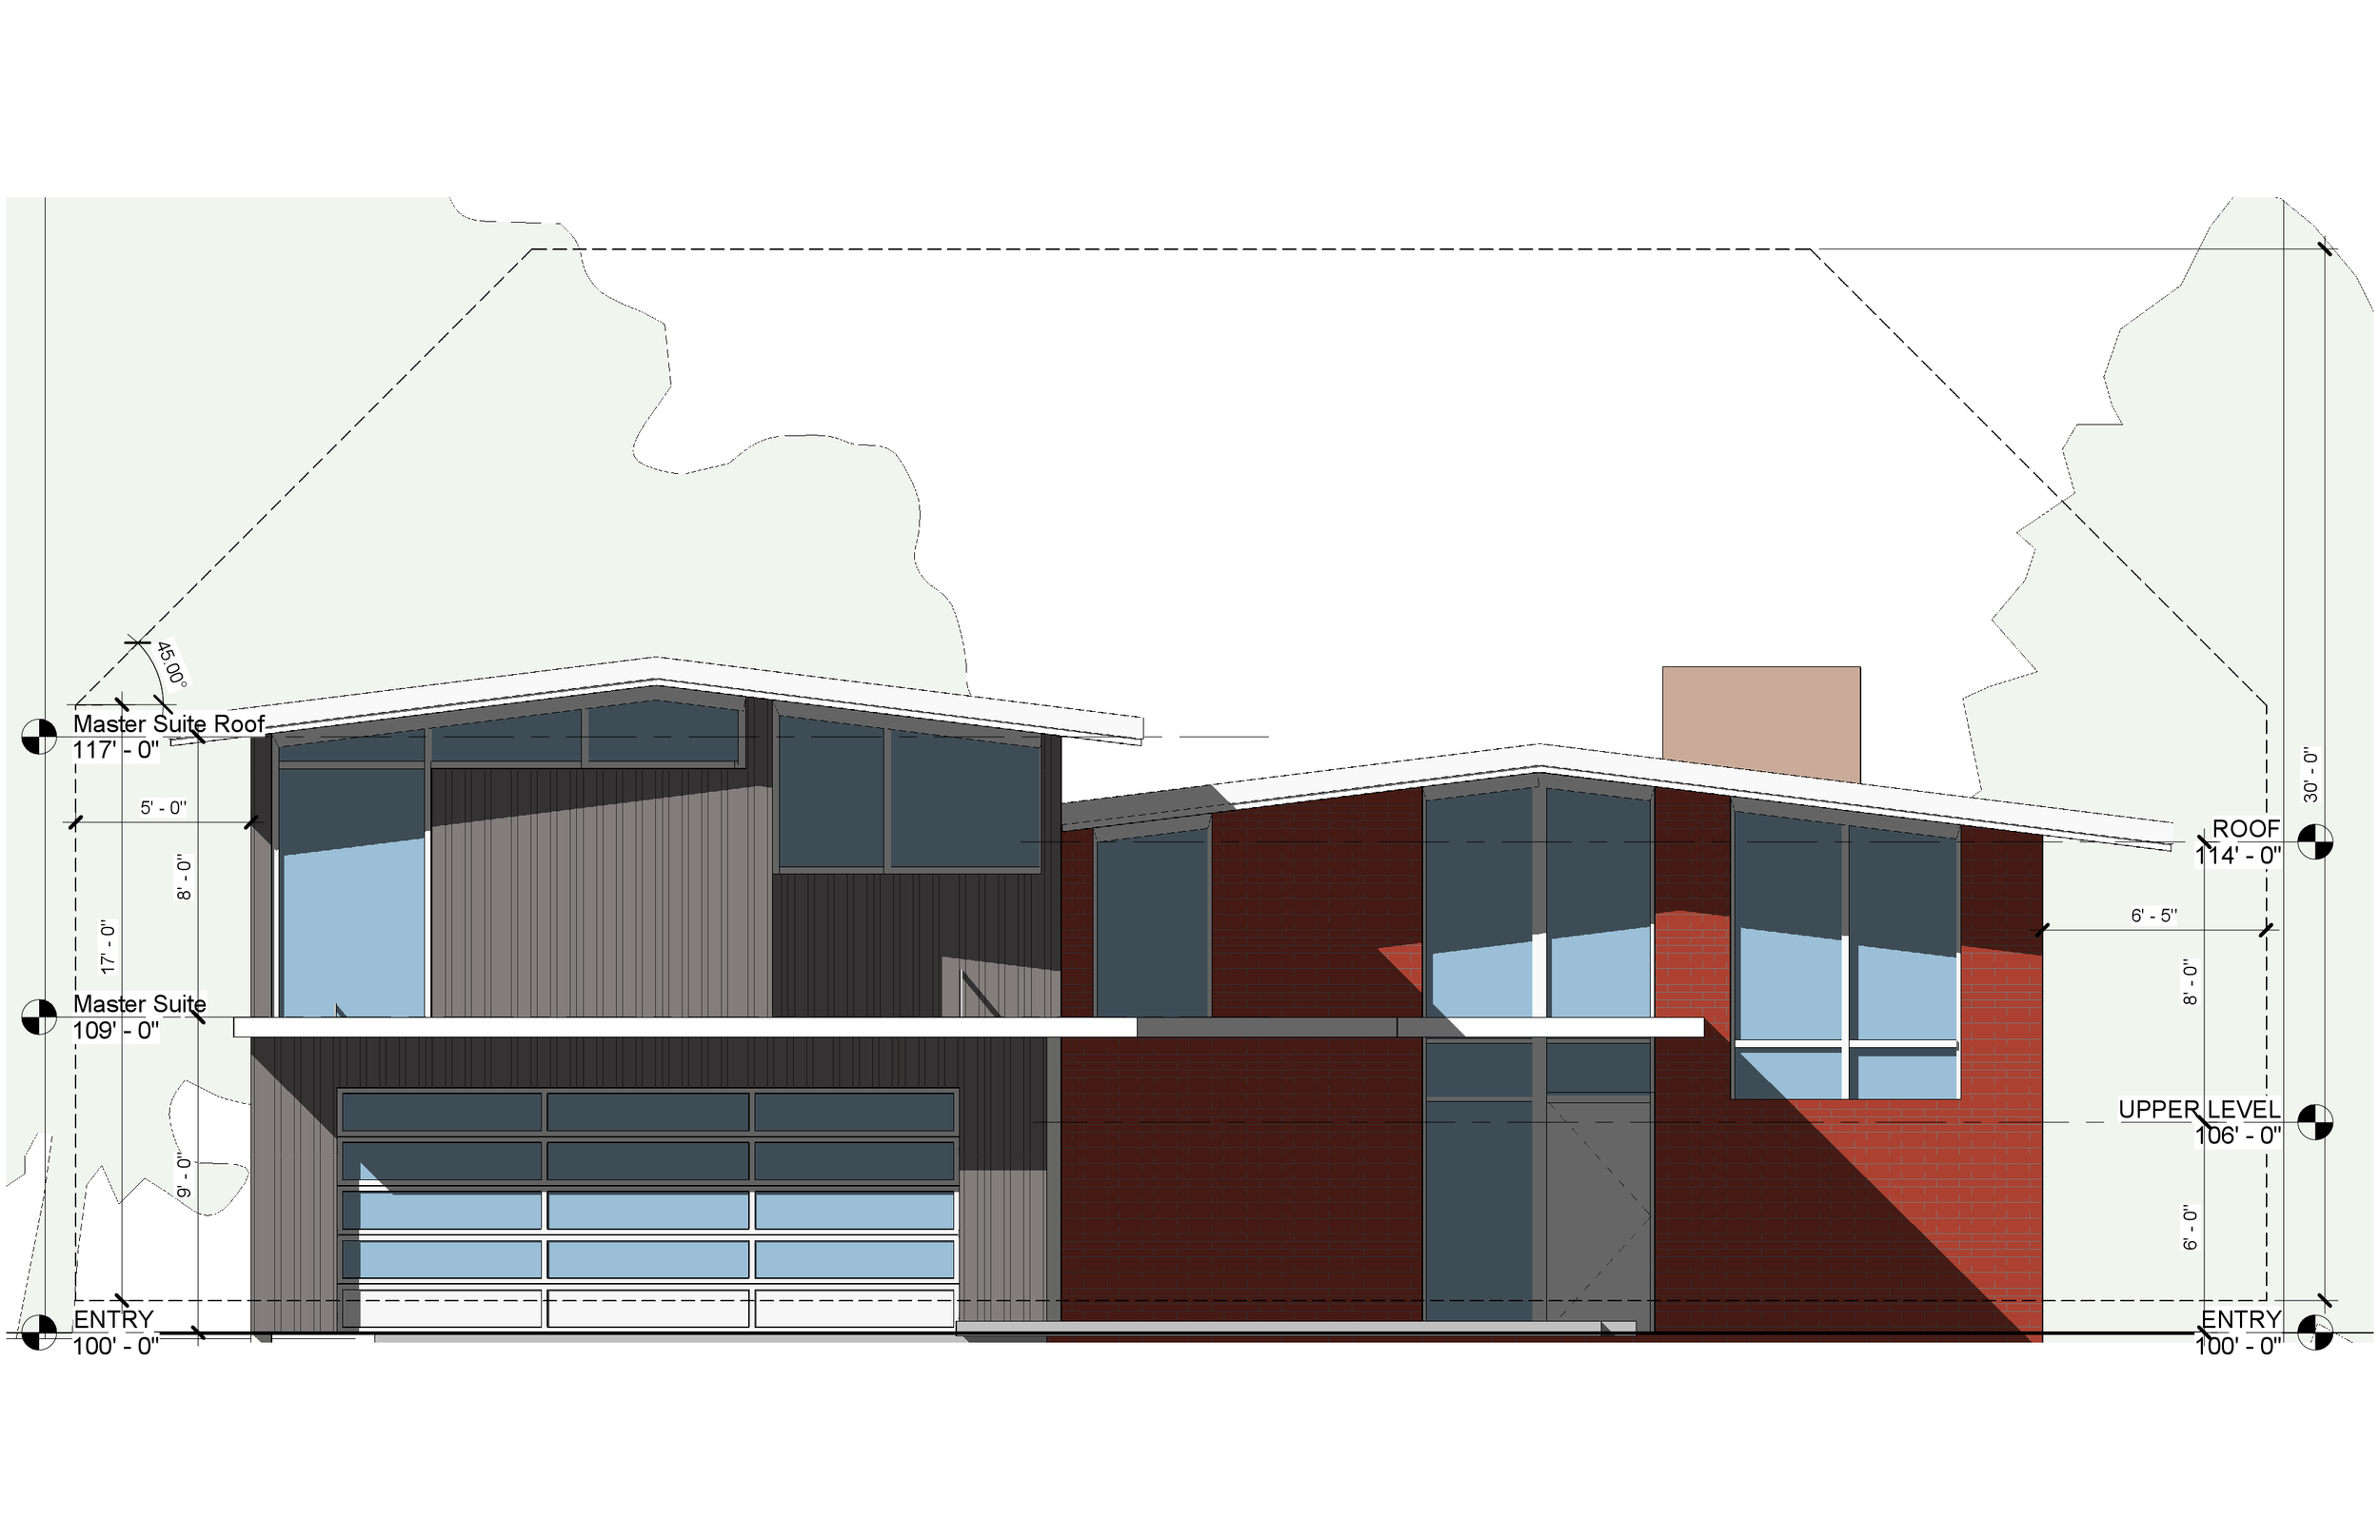 Mason front elevation w laundry window.png